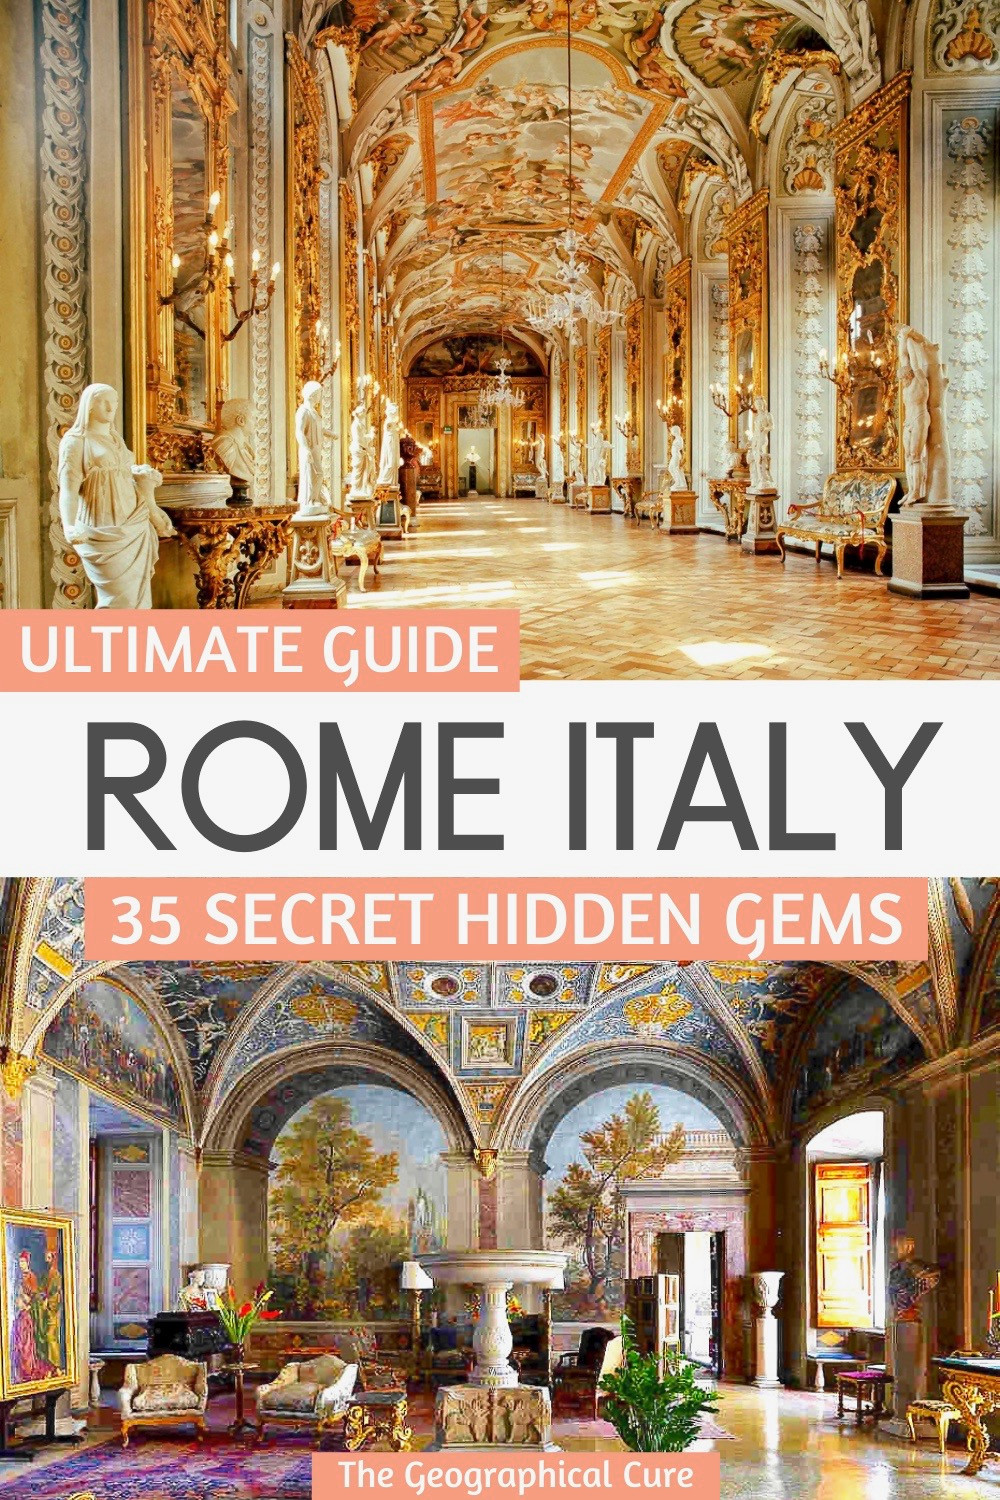 Ultimate Guide to 35 Hidden Gems in Rome